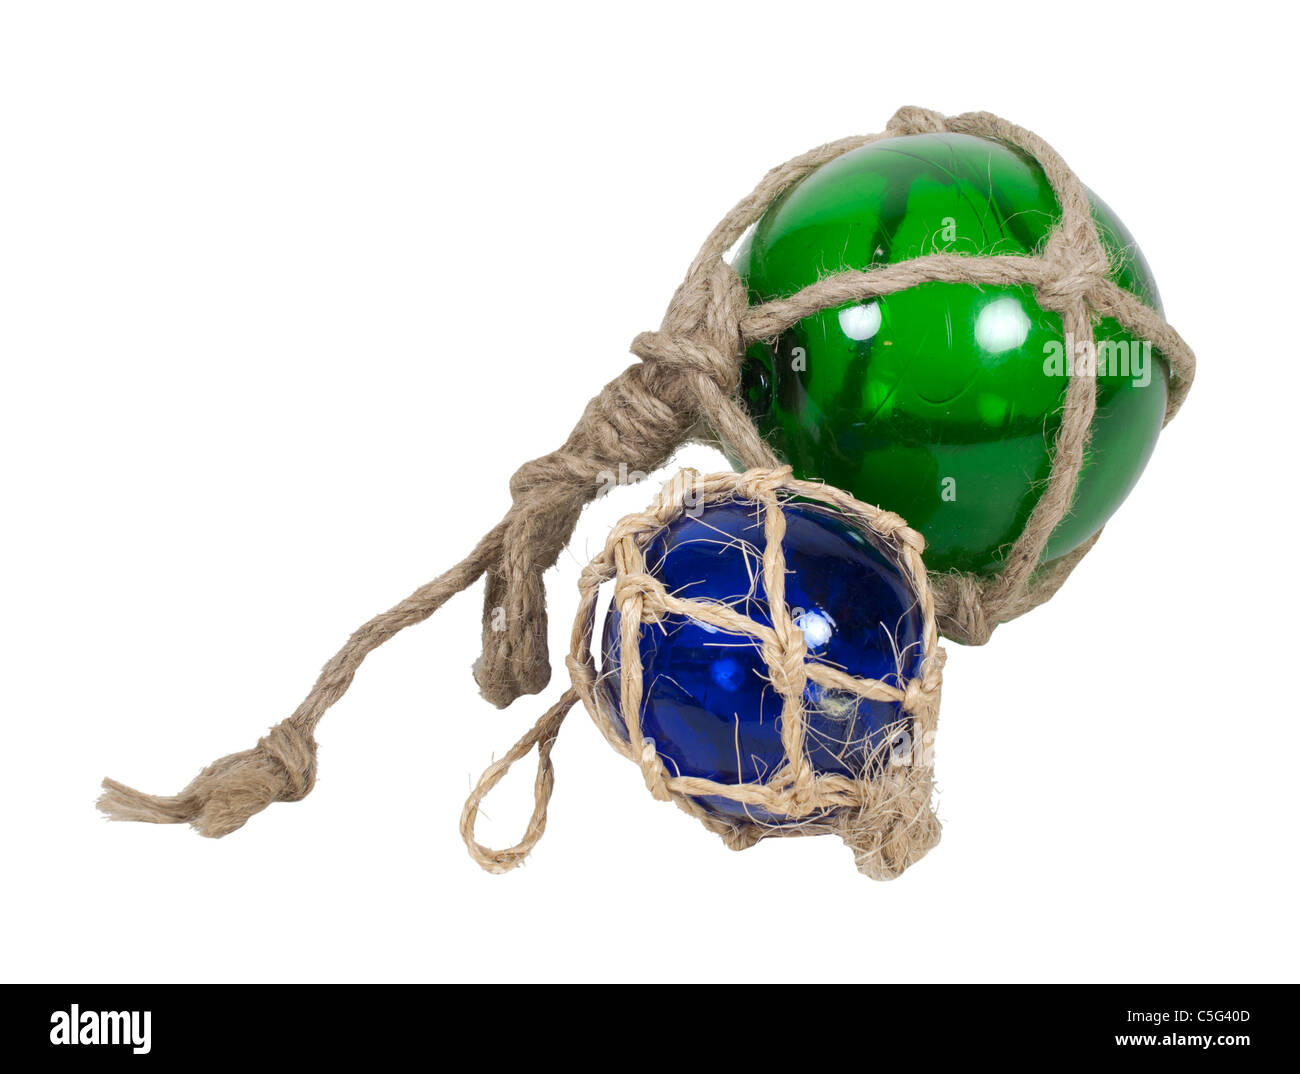 Green and blue nautical glass floats tied with rough rope - path included - Stock Image